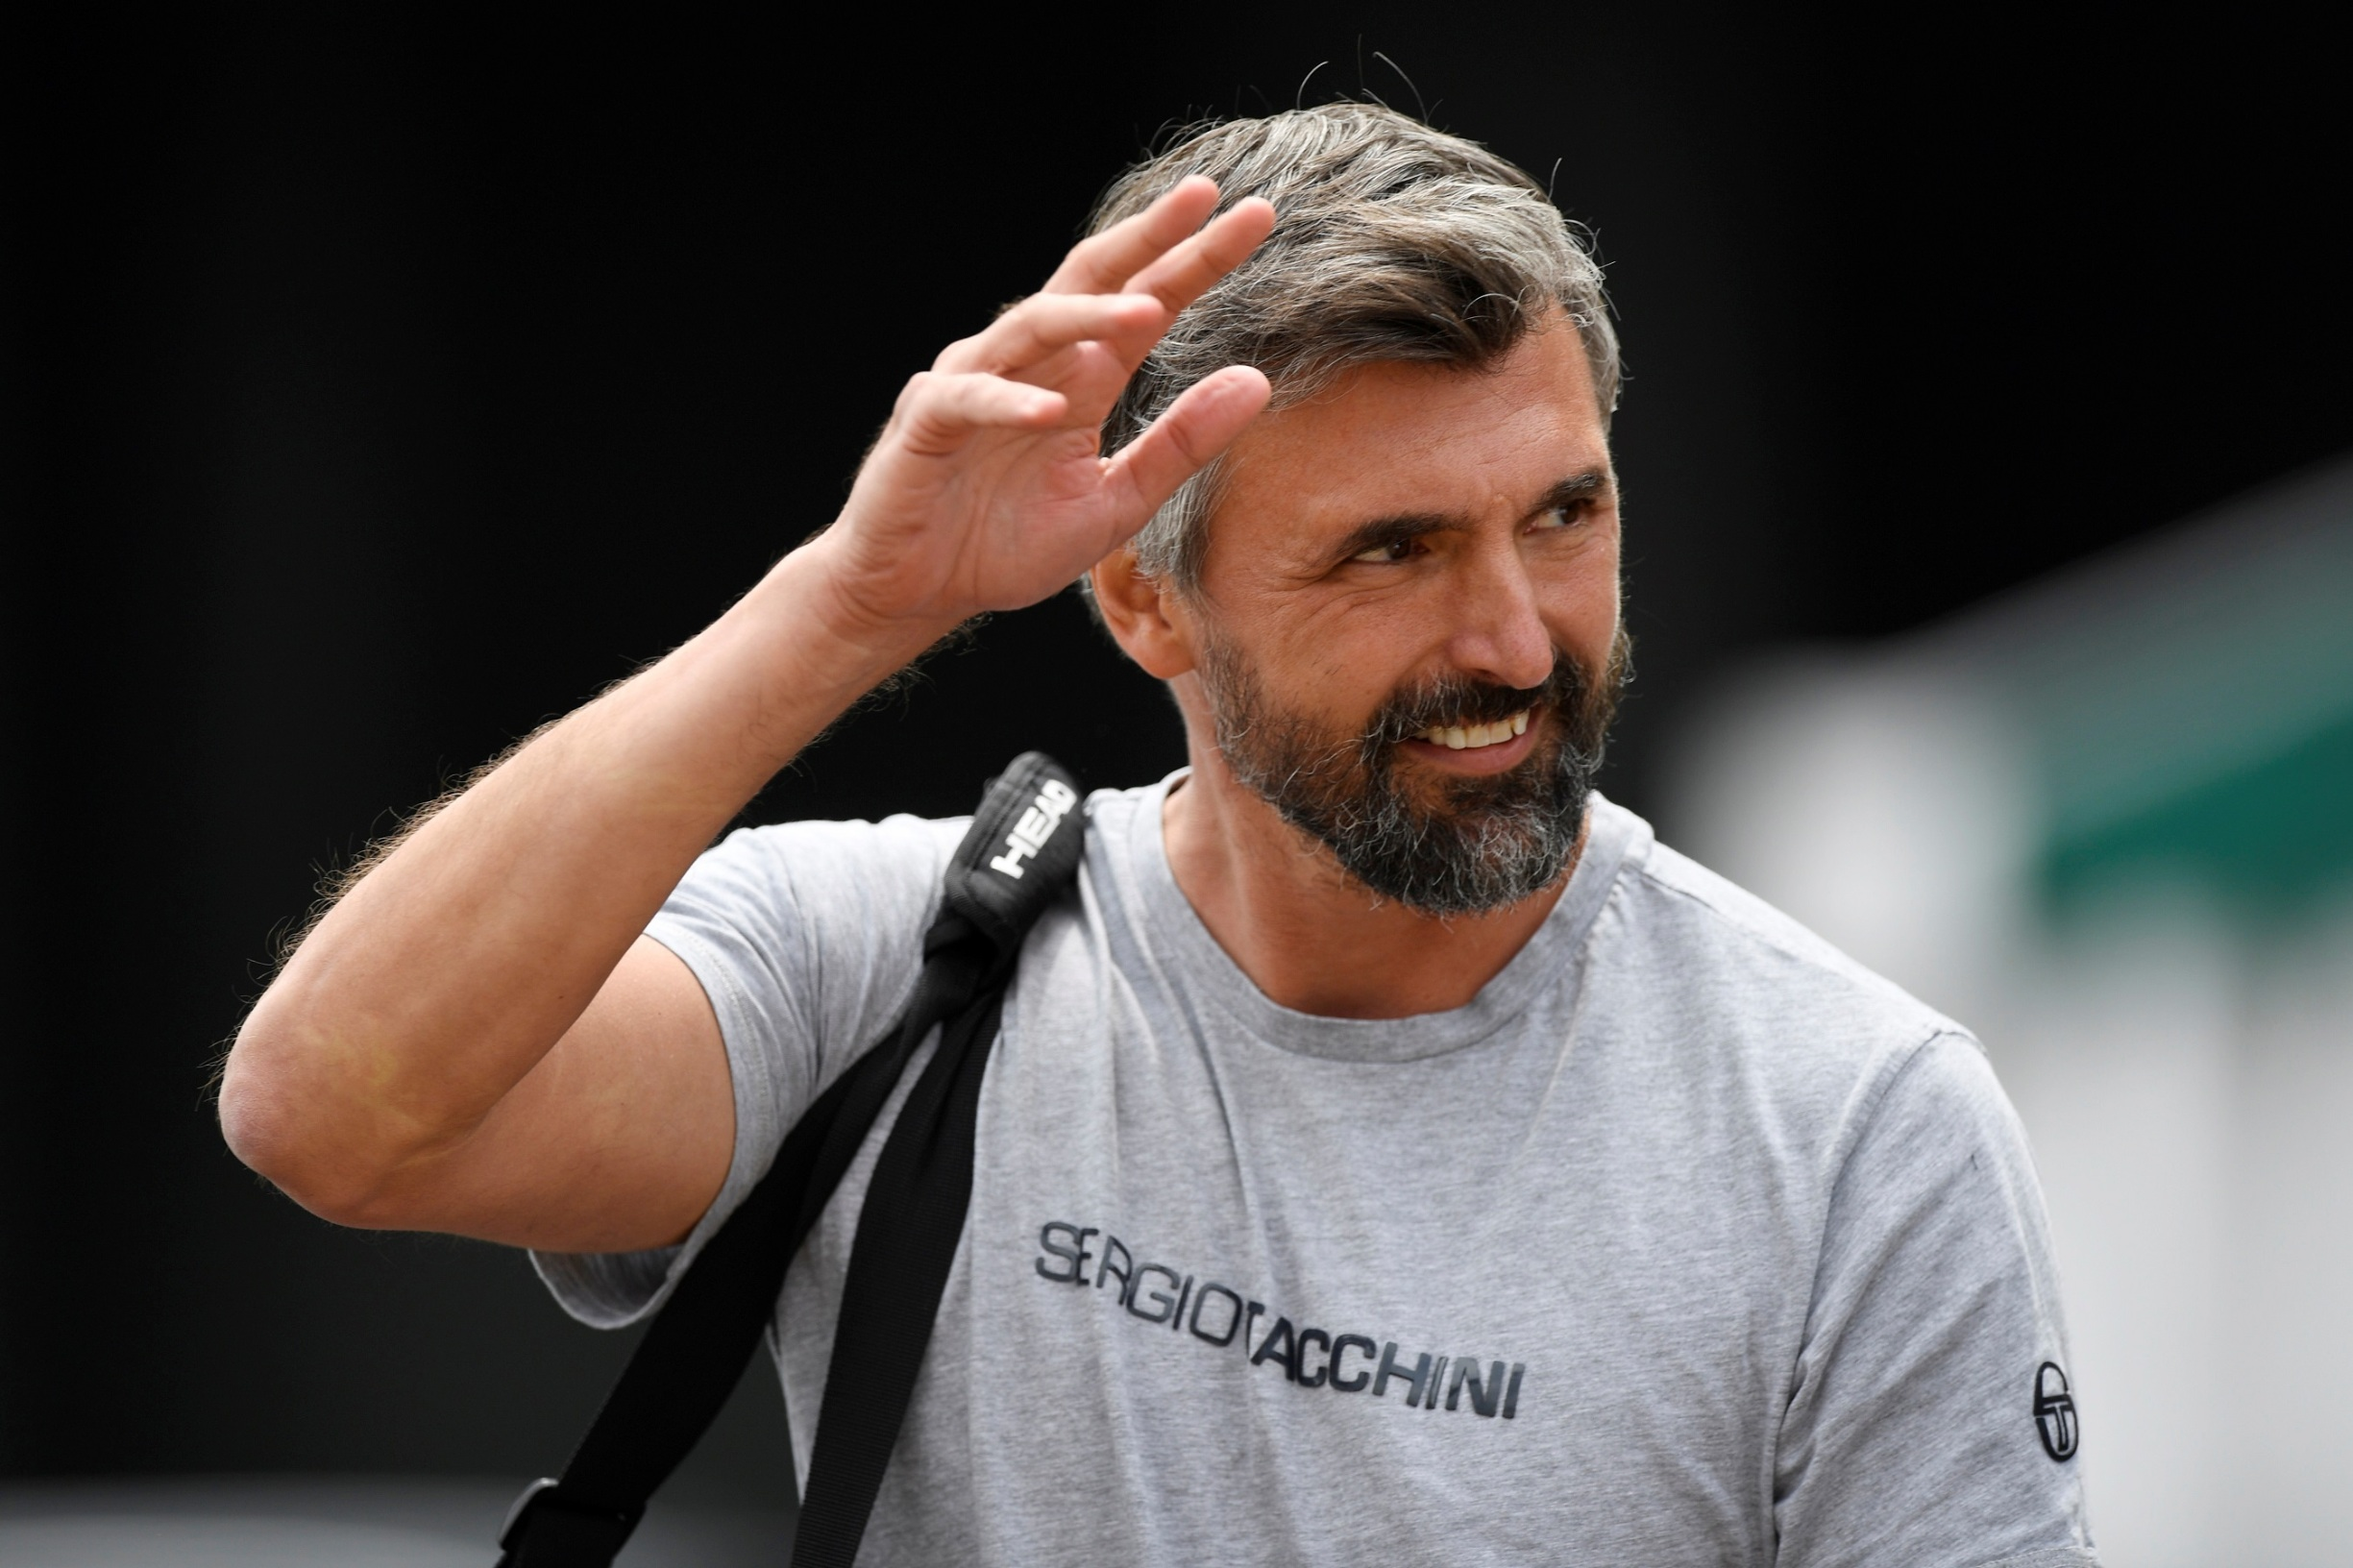 Tennis - Wimbledon - All England Lawn Tennis and Croquet Club, London, Britain - July 7, 2019  Goran Ivanisevic during a practice session  REUTERS/Tony O'Brien - RC1454498910